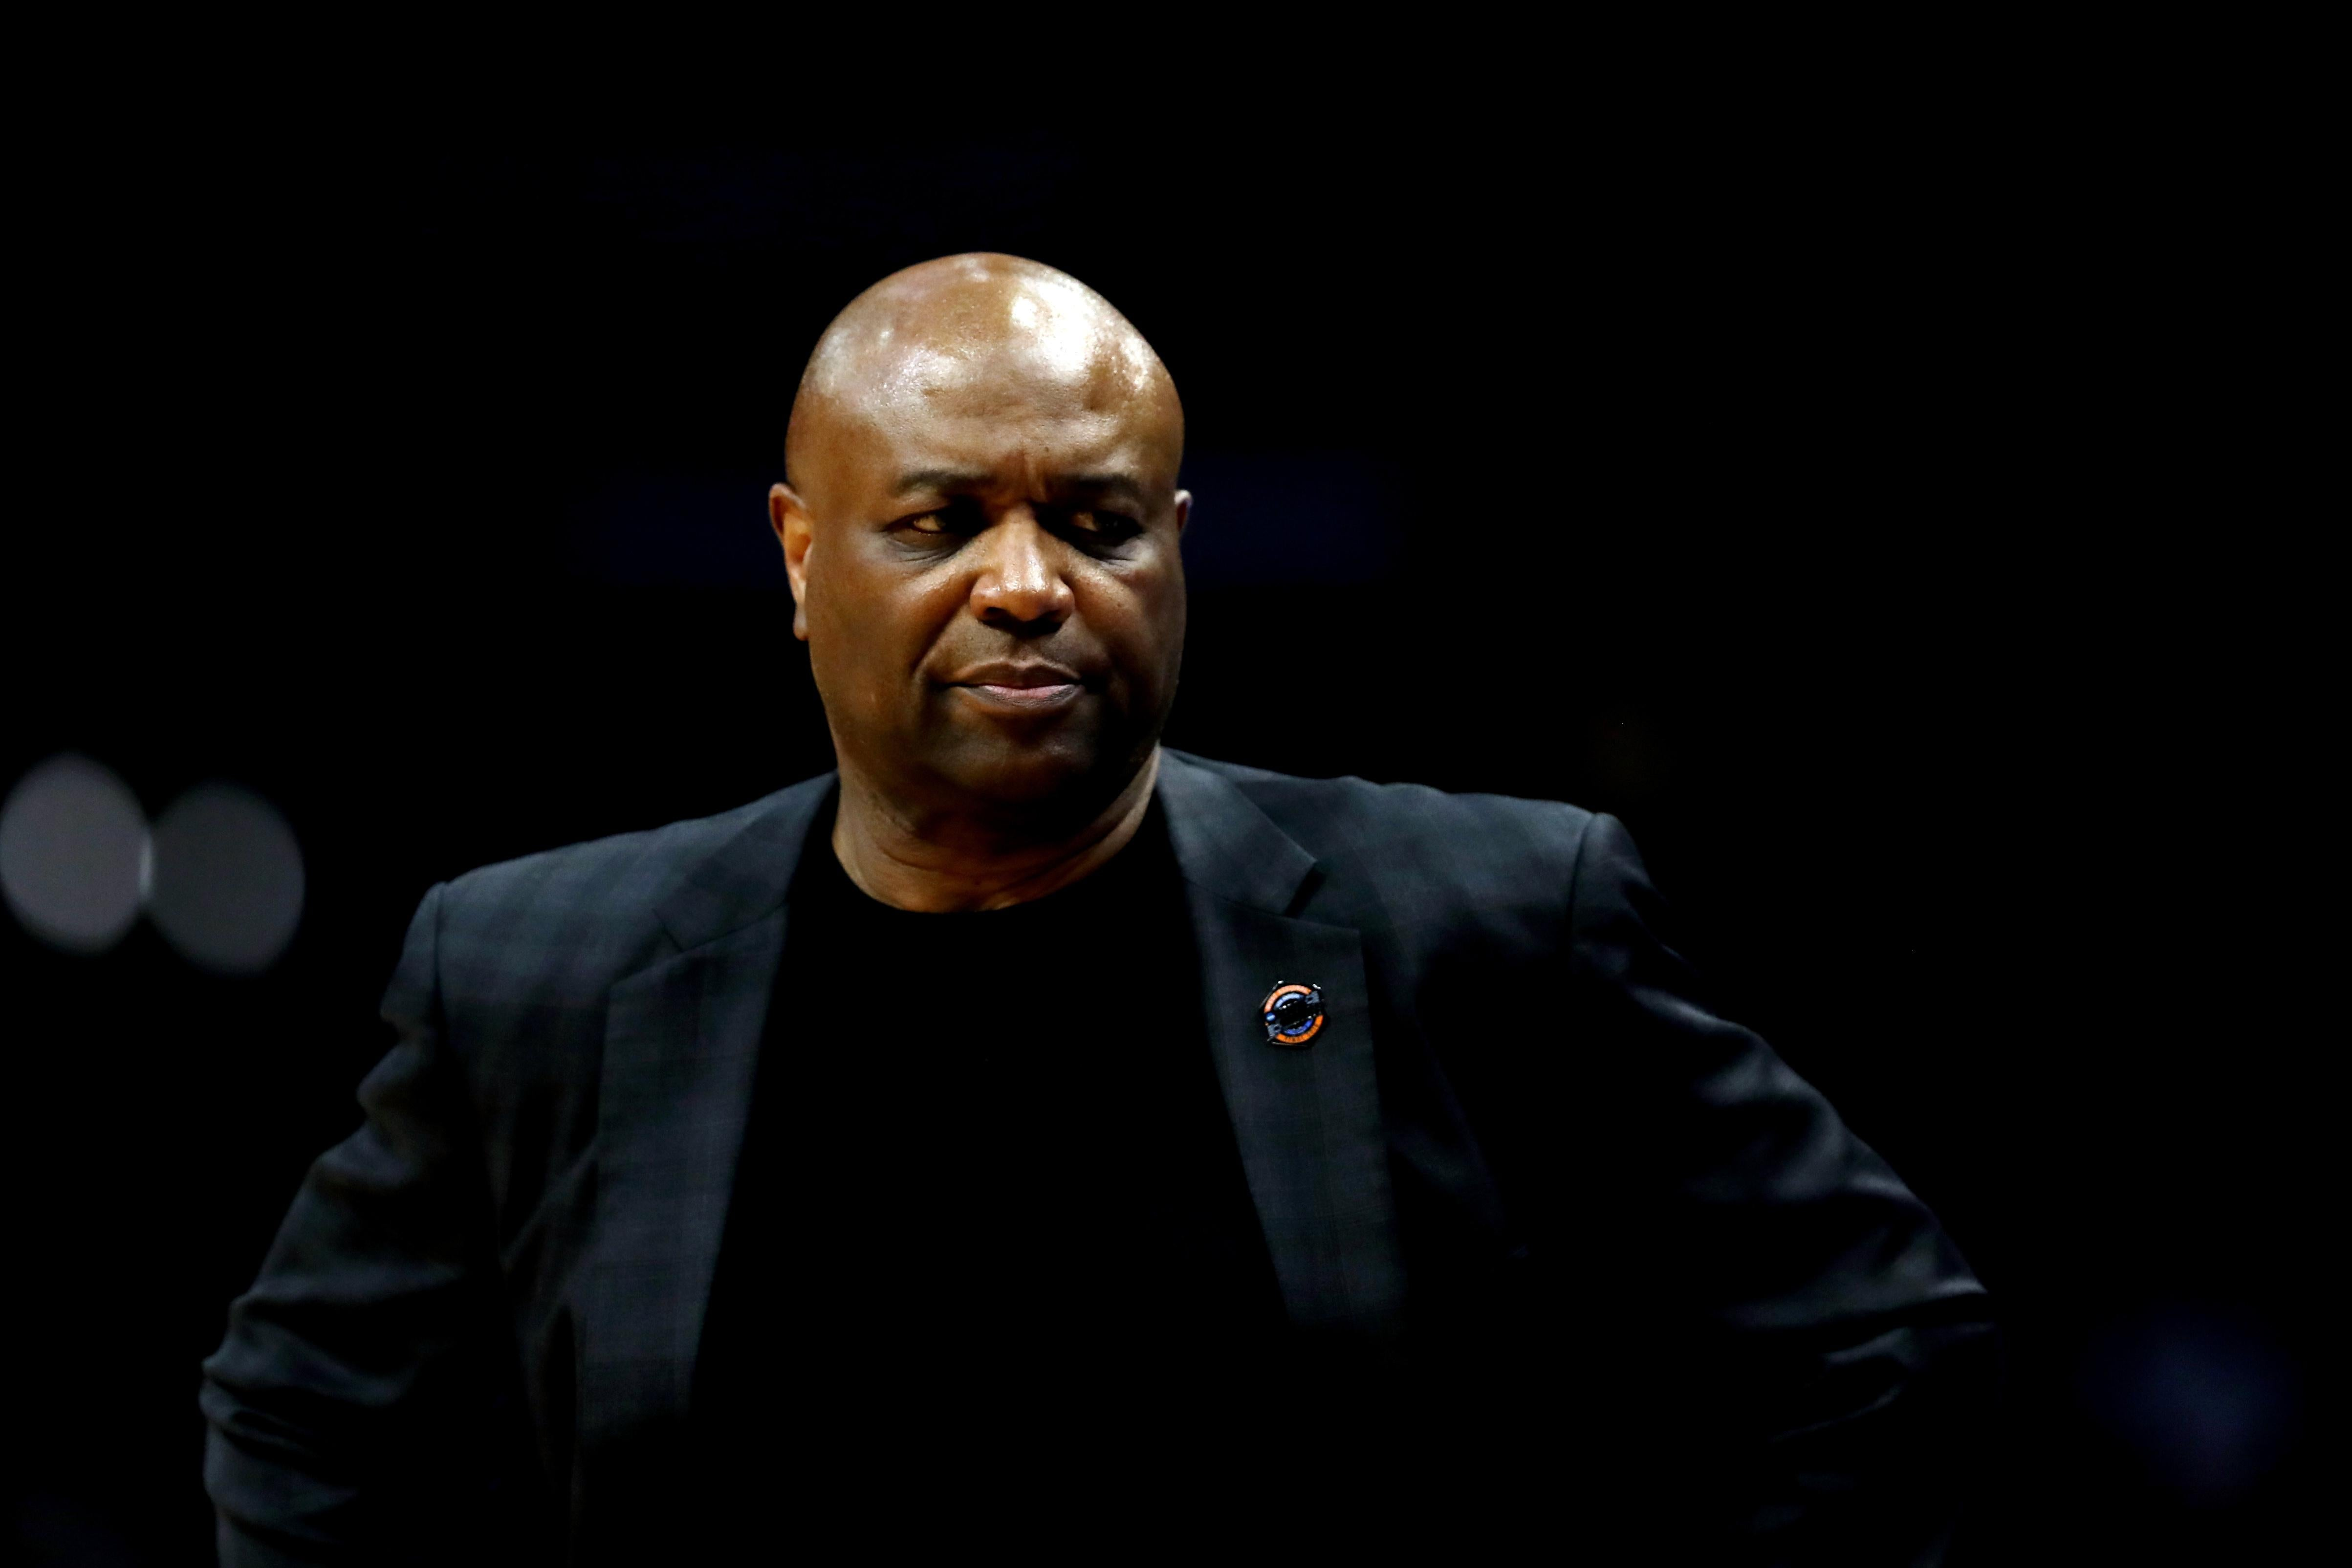 LOS ANGELES, CA - MARCH 24: Head coach Leonard Hamilton of the Florida State Seminoles looks on against the Michigan Wolverines during the second half in the 2018 NCAA Men's Basketball Tournament West Regional Final at Staples Center on March 24, 2018 in Los Angeles, California.  (Photo by Ezra Shaw/Getty Images)